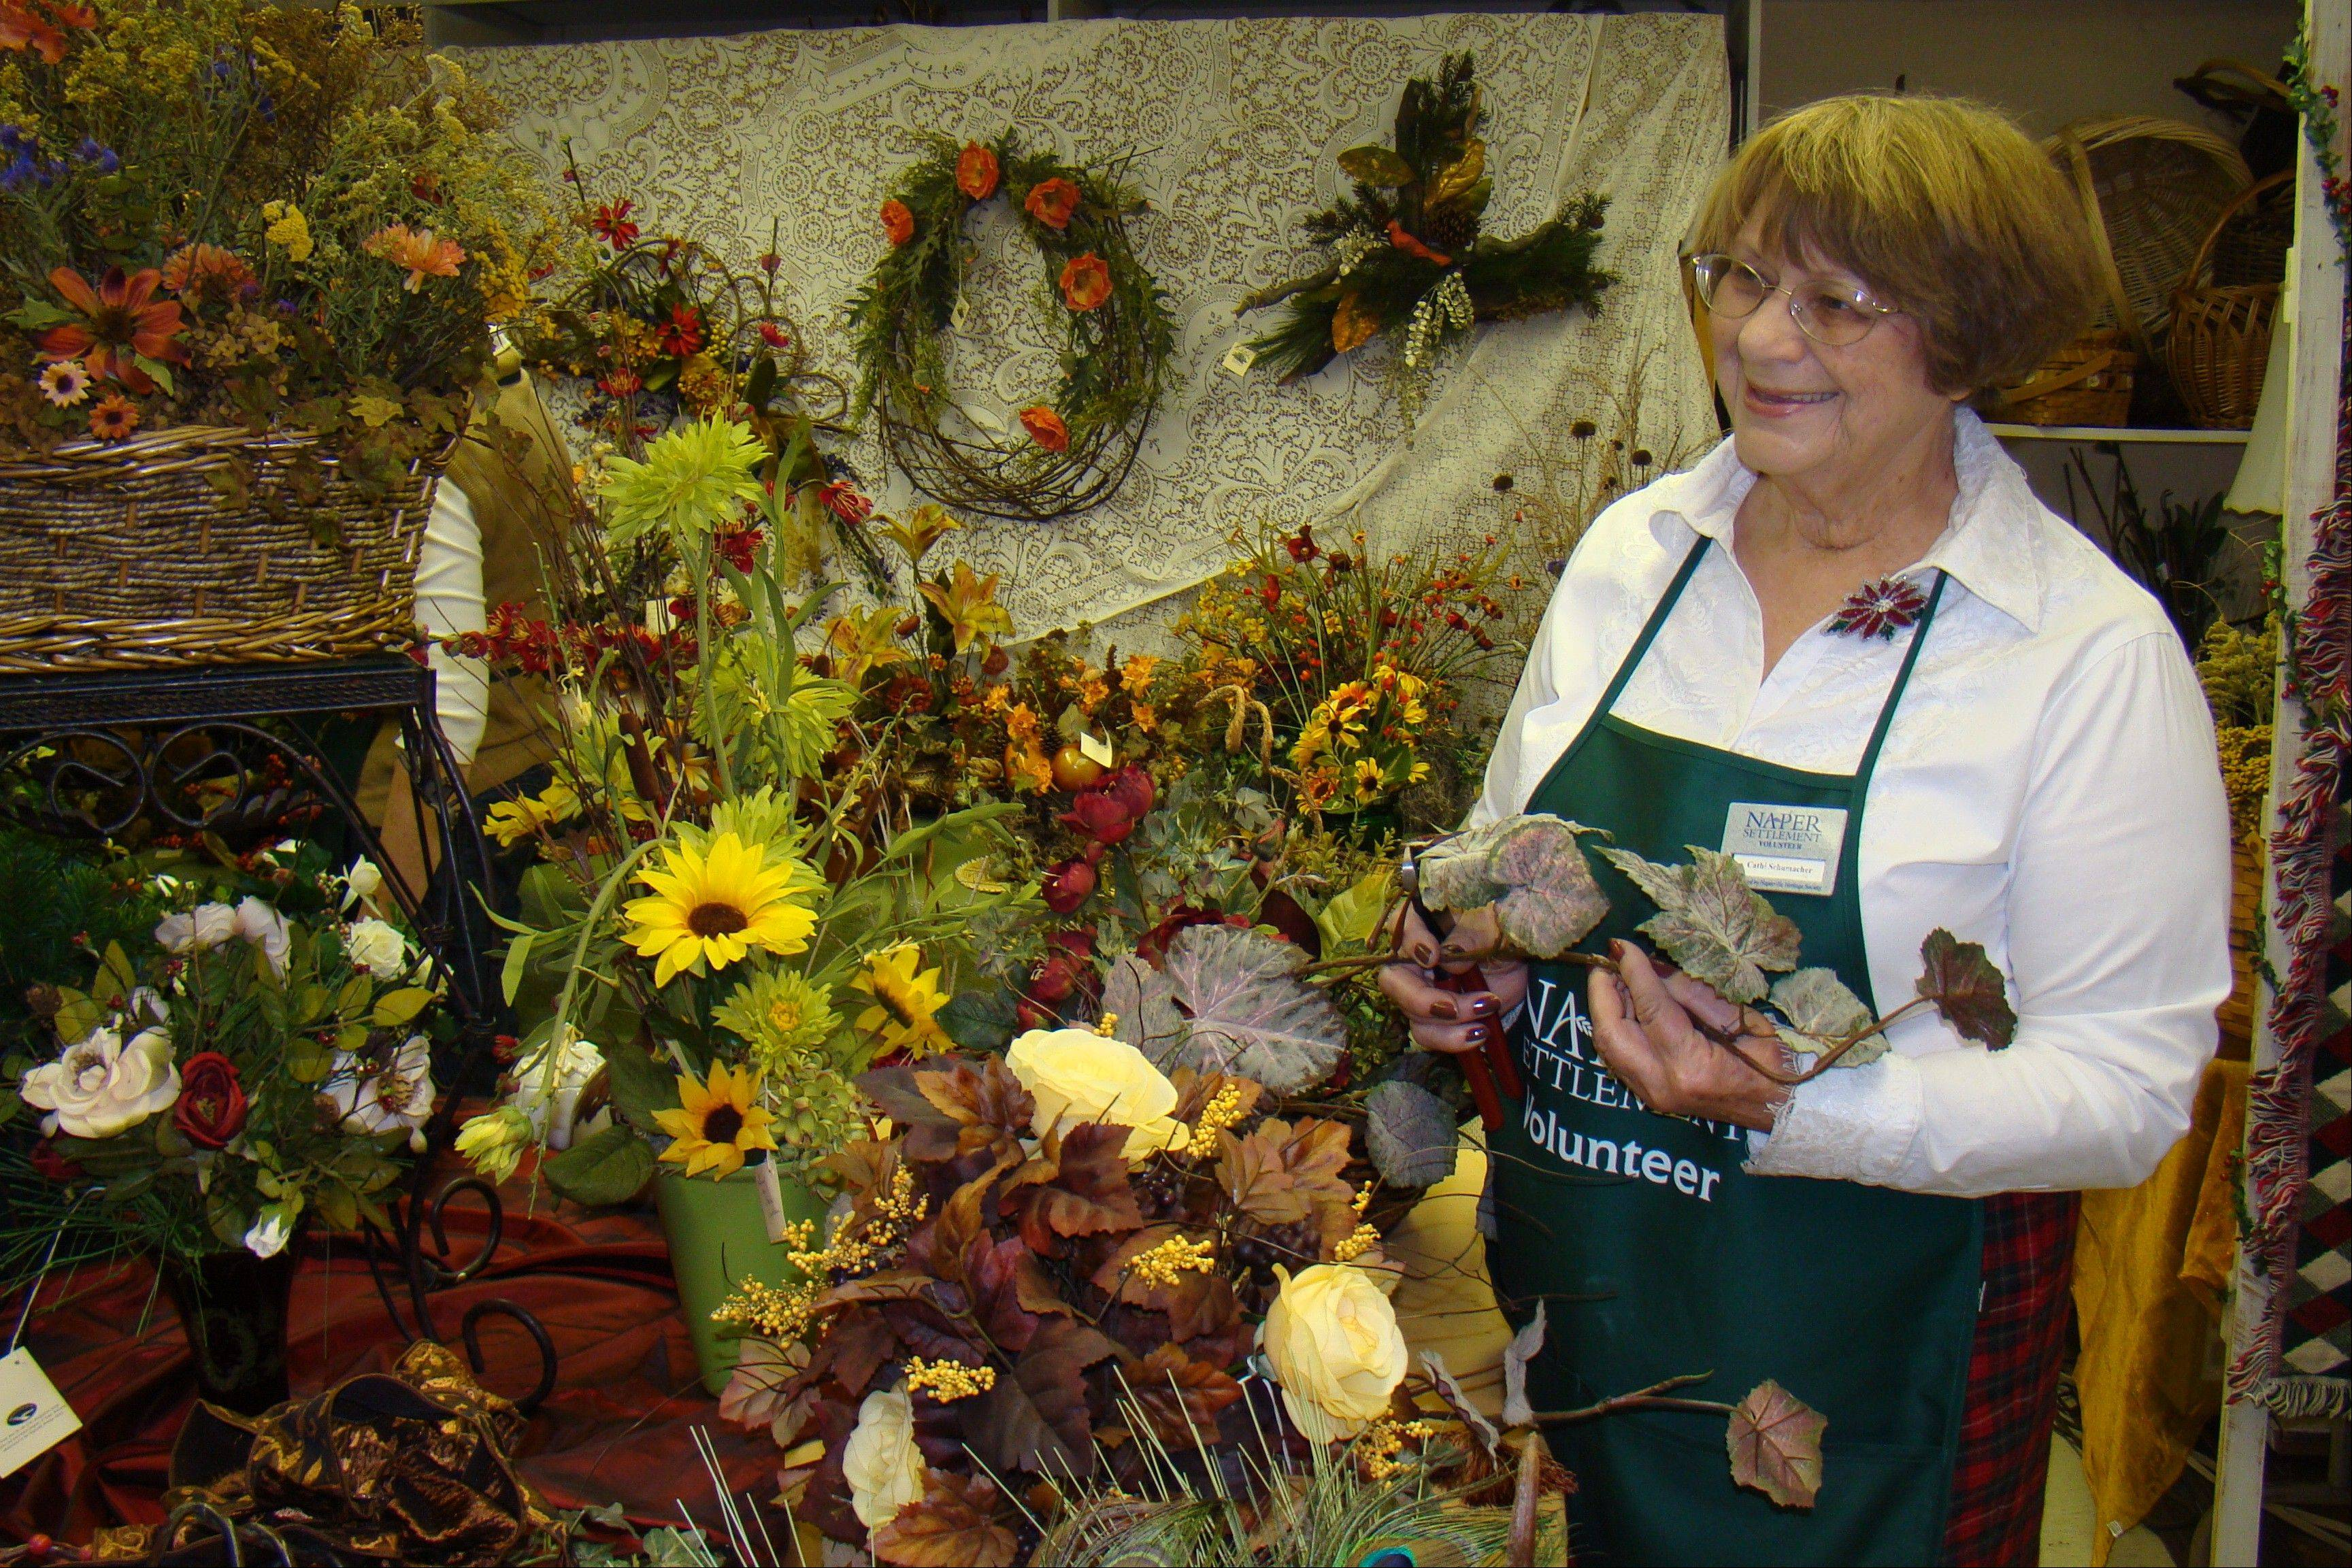 Cathi Schumacher, a member of the Weed Ladies volunteer floral designing group, looks over some floral arrangements, as the group prepares for its annual Winter Show and Sale at the Naper Settlement.